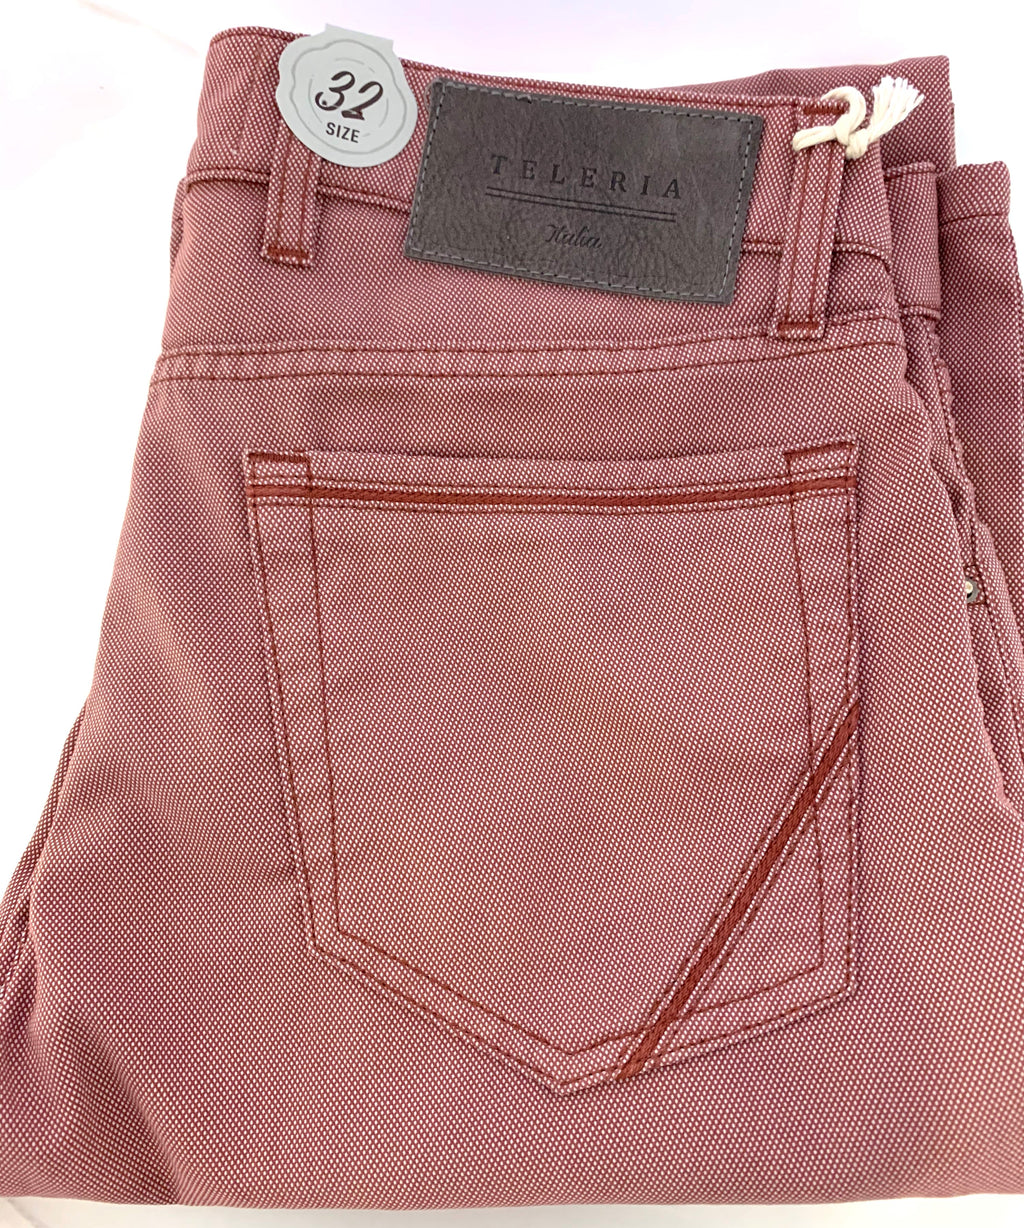 Teleria Zed Rose Pique Cotton 5 Pocket Jeans